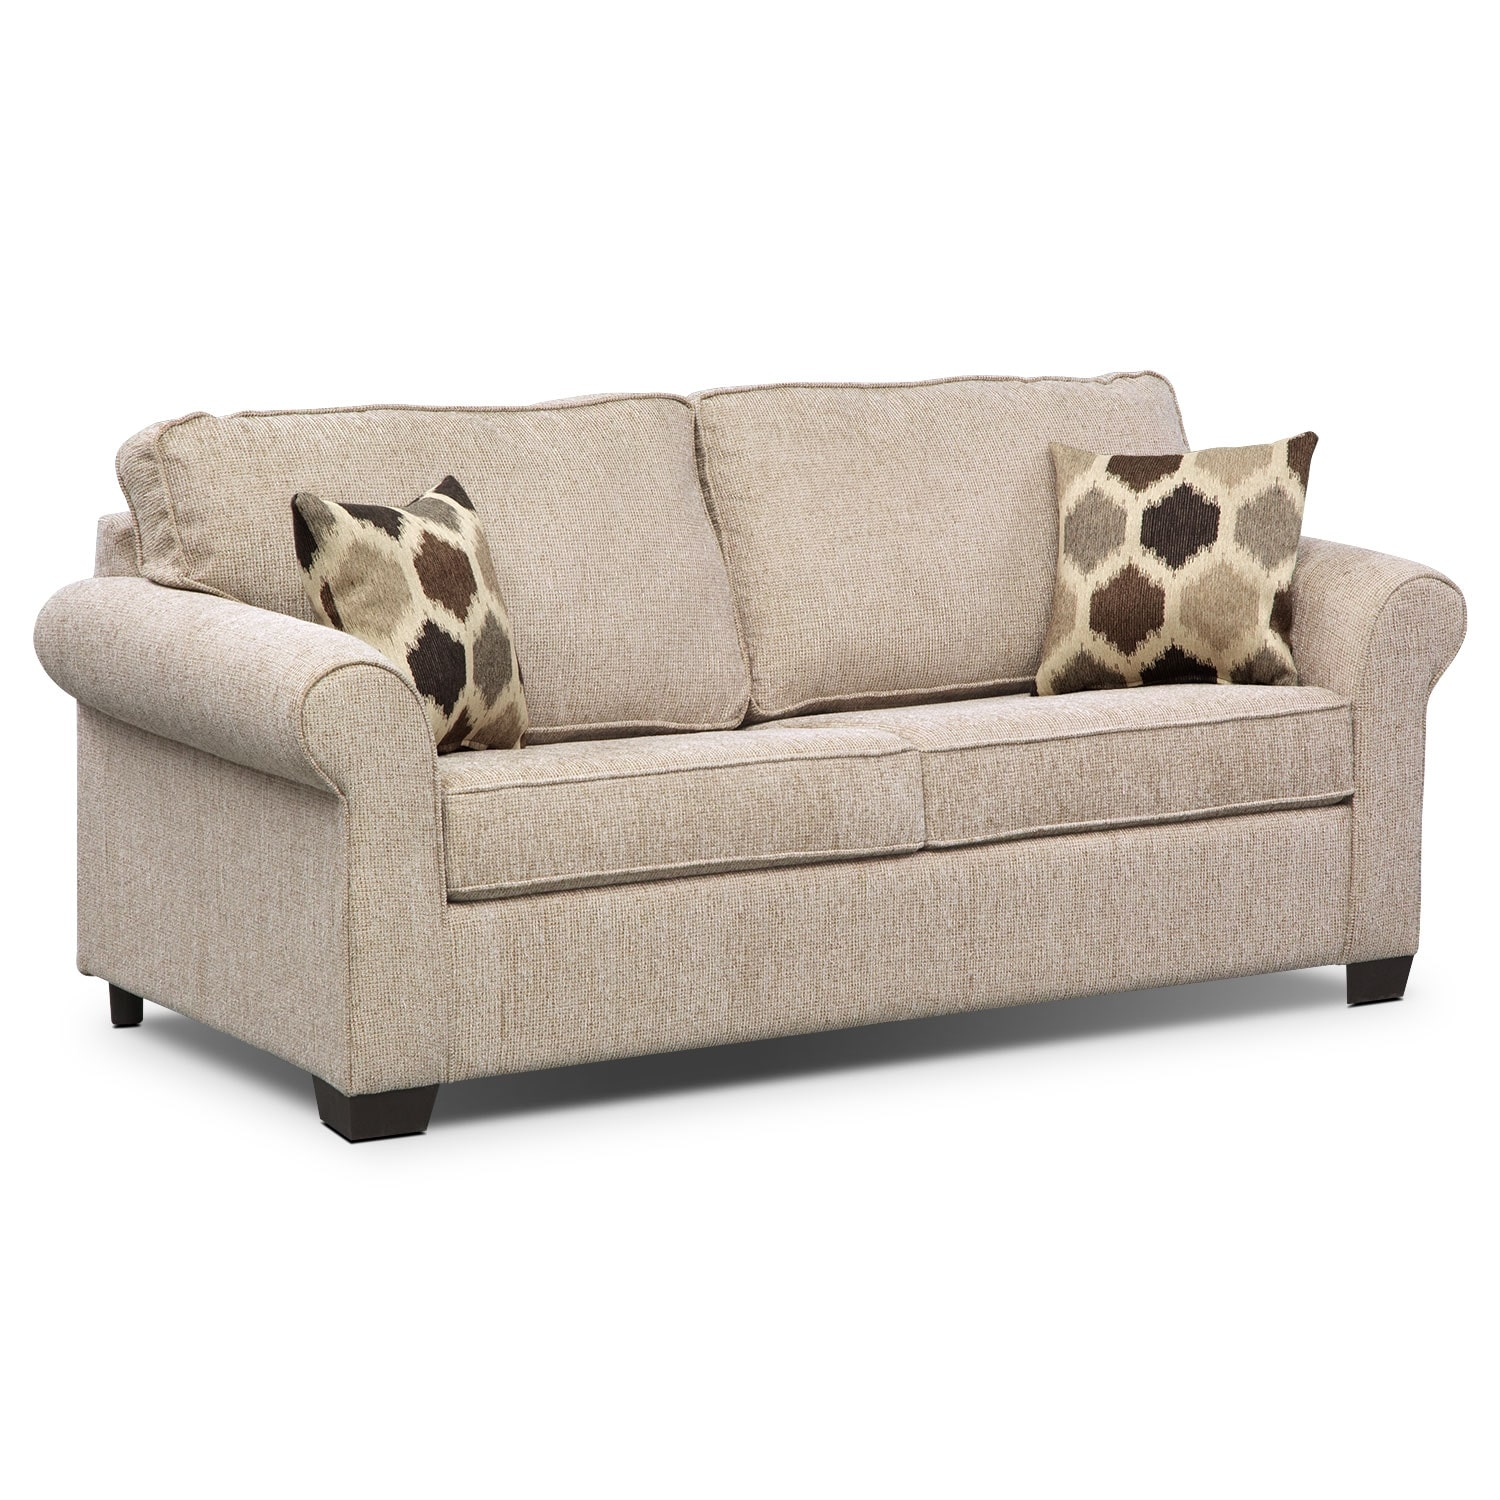 Fletcher Full Memory Foam Sleeper Sofa - Beige